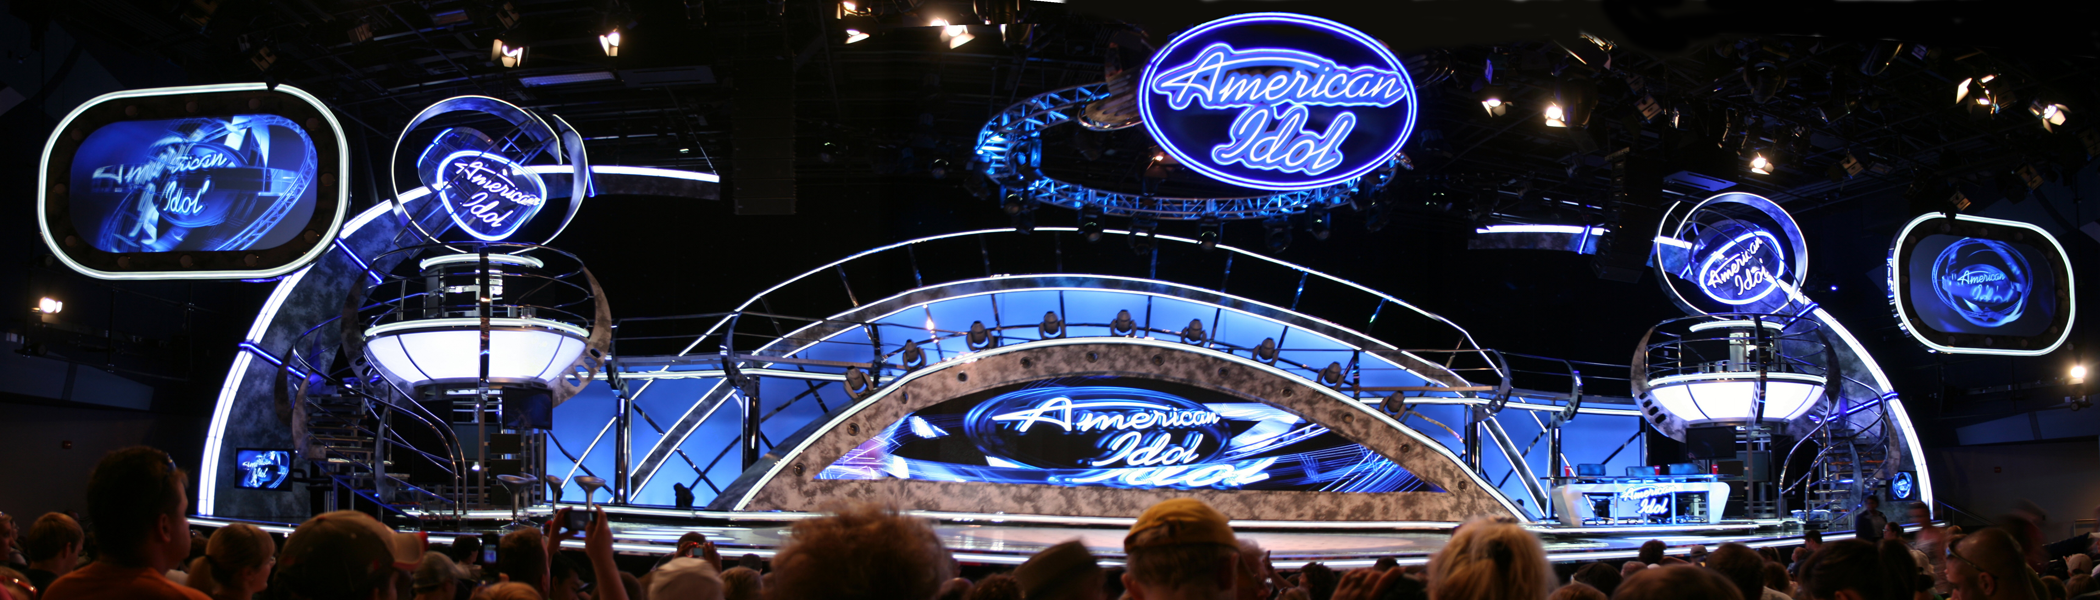 fileamerican idol experience stagepng wikimedia commons